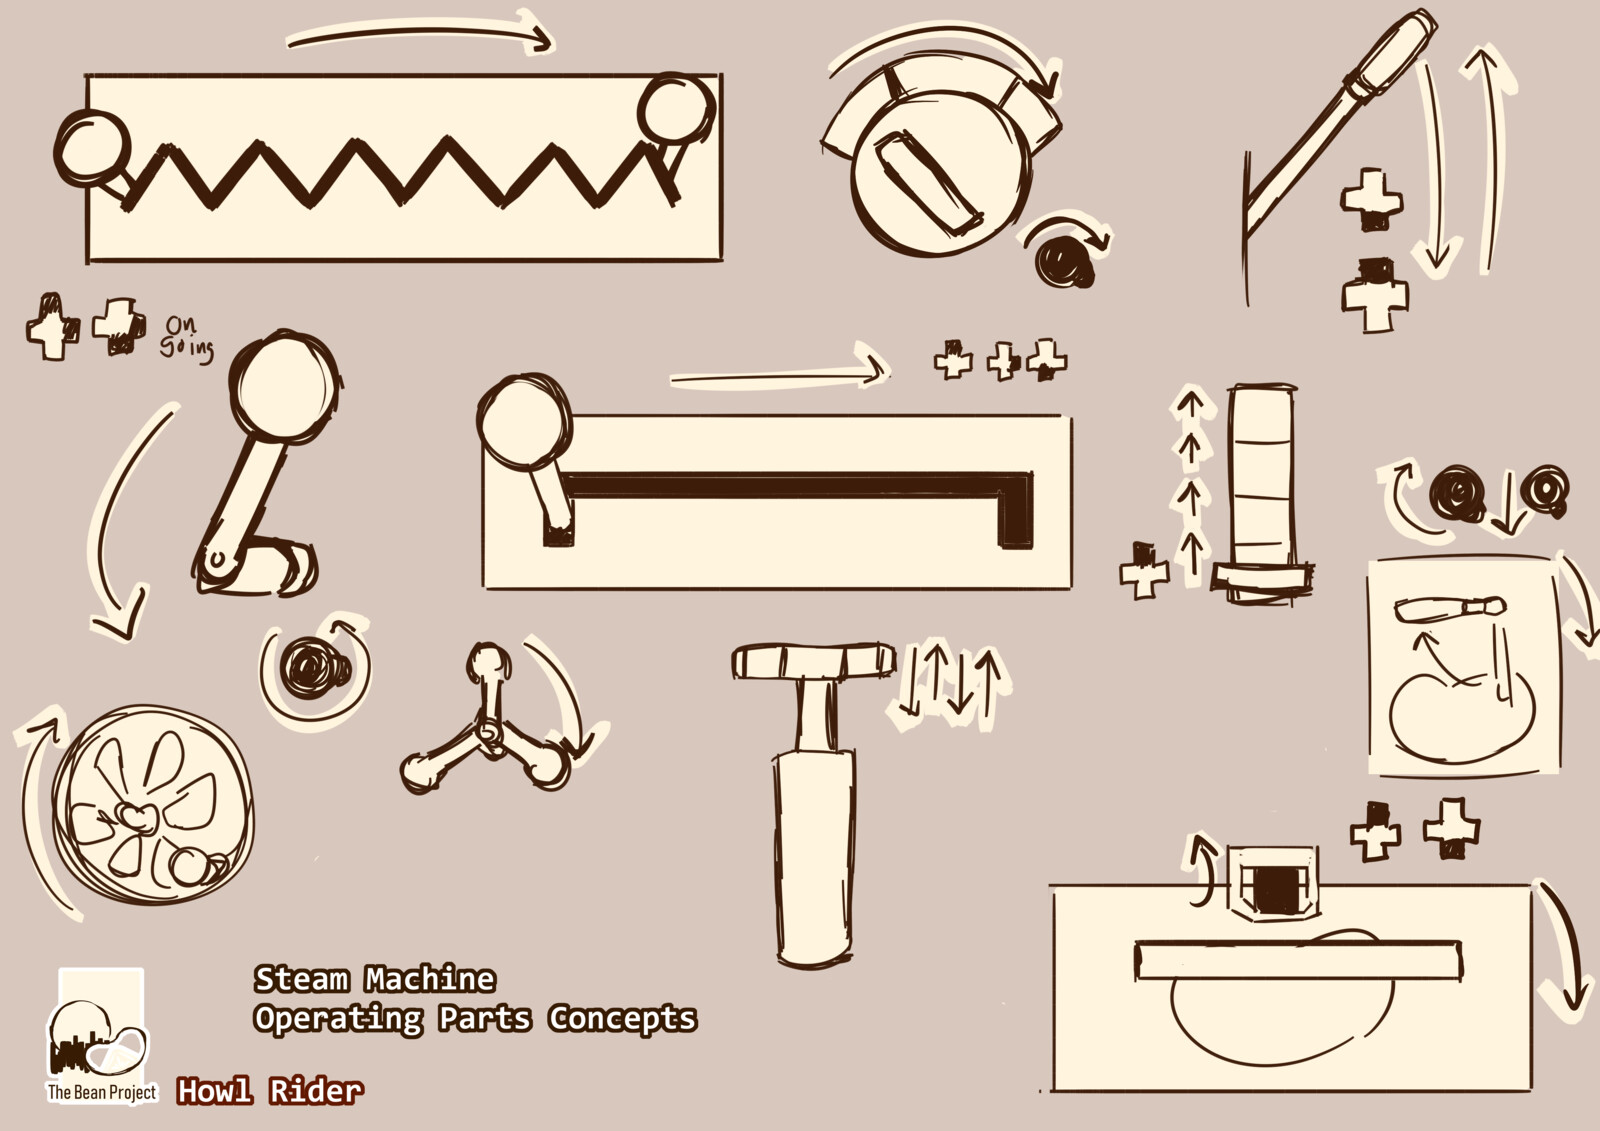 Concepts of what sort of parts to put on the steamer.